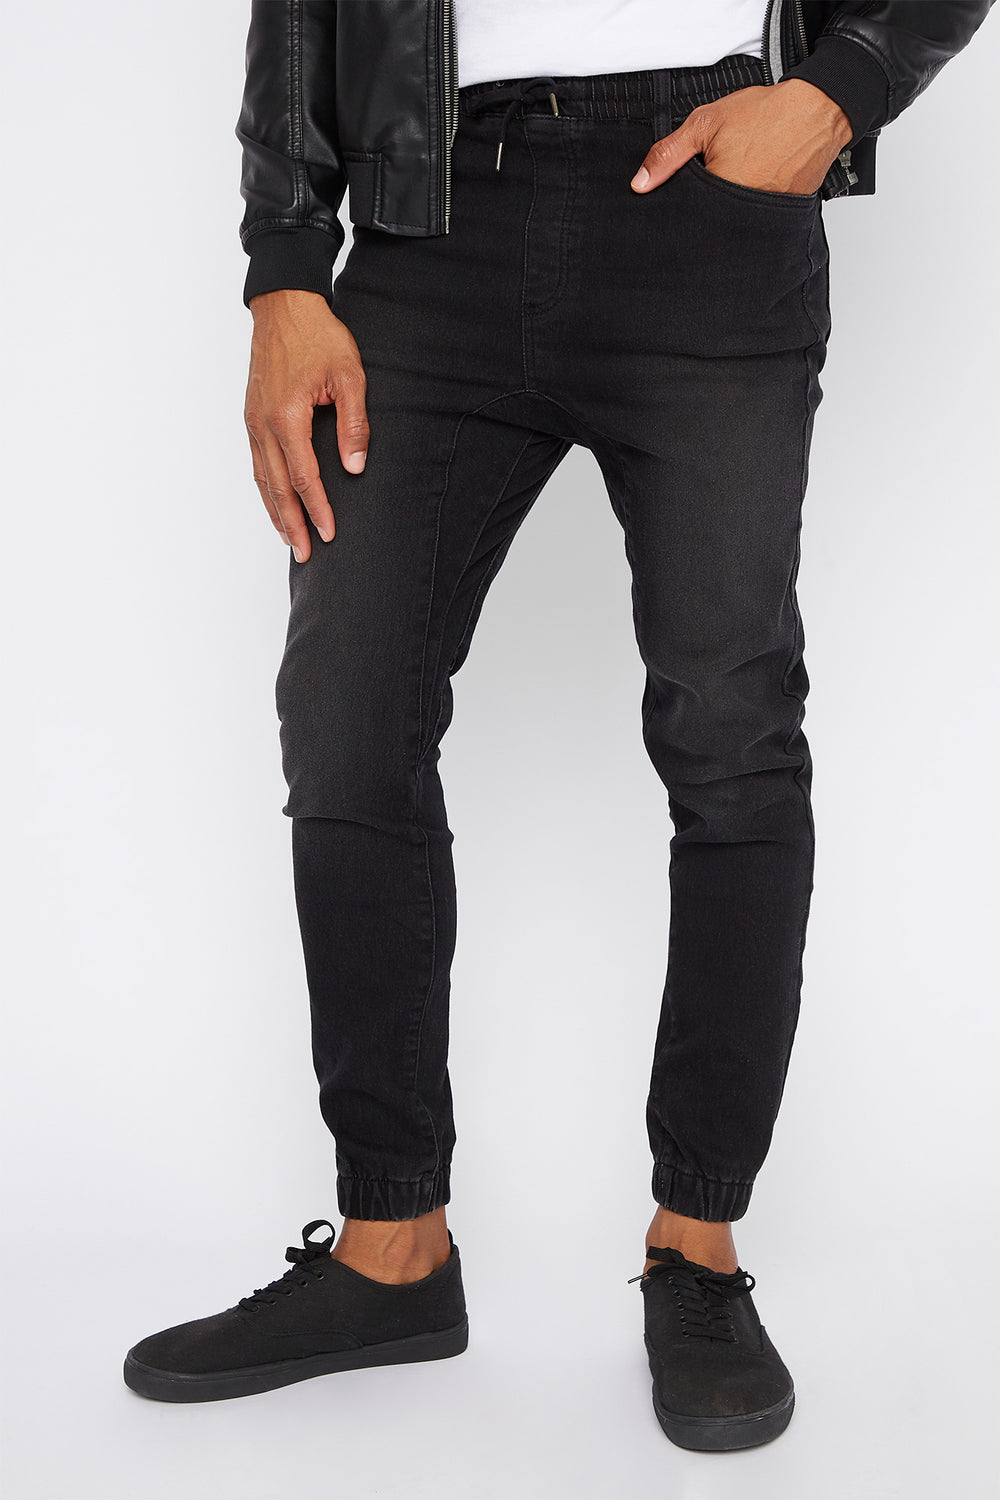 Acid Wash Denim Jogger Black